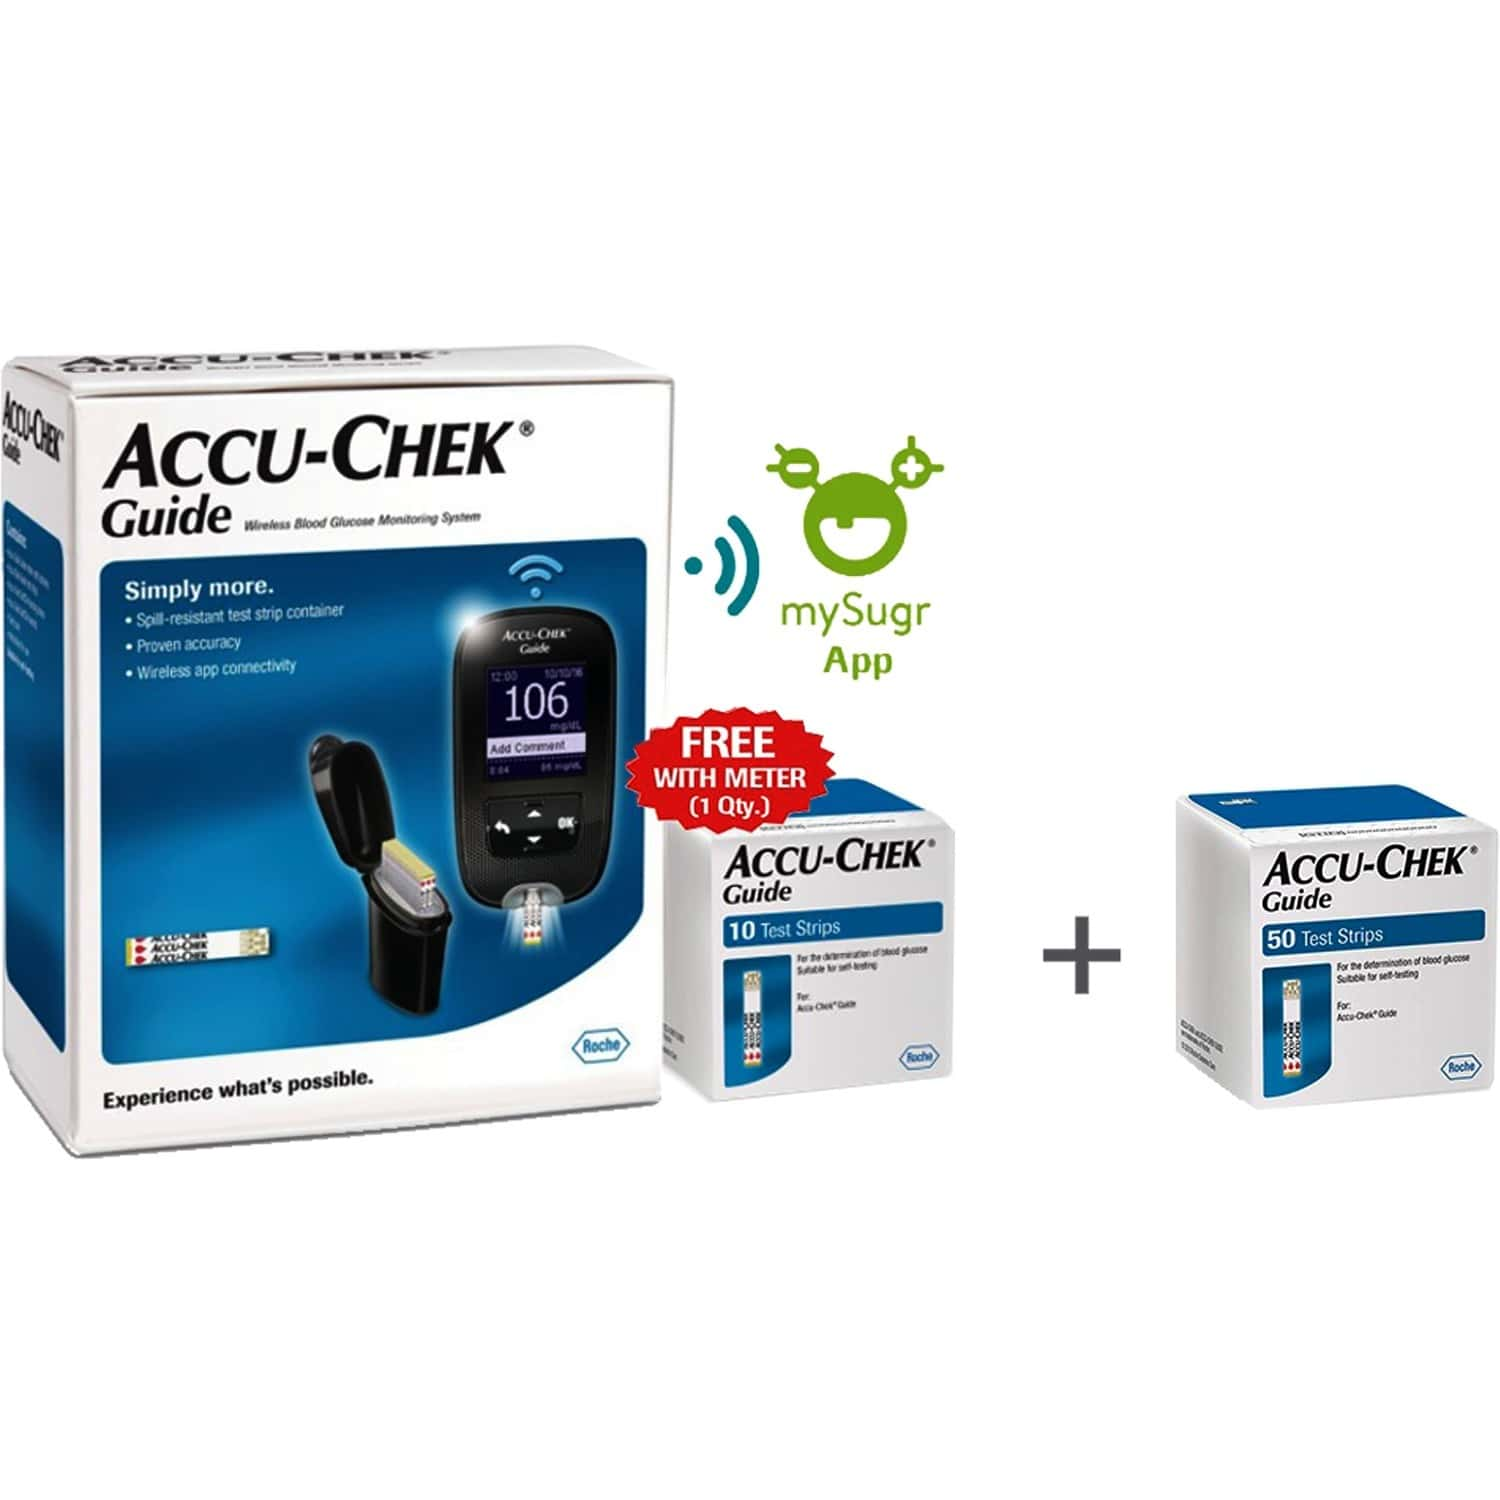 Accu-chek Guide Meter (bluetoooth) With 10 Strips + Accu-chek Guide 50 Strips